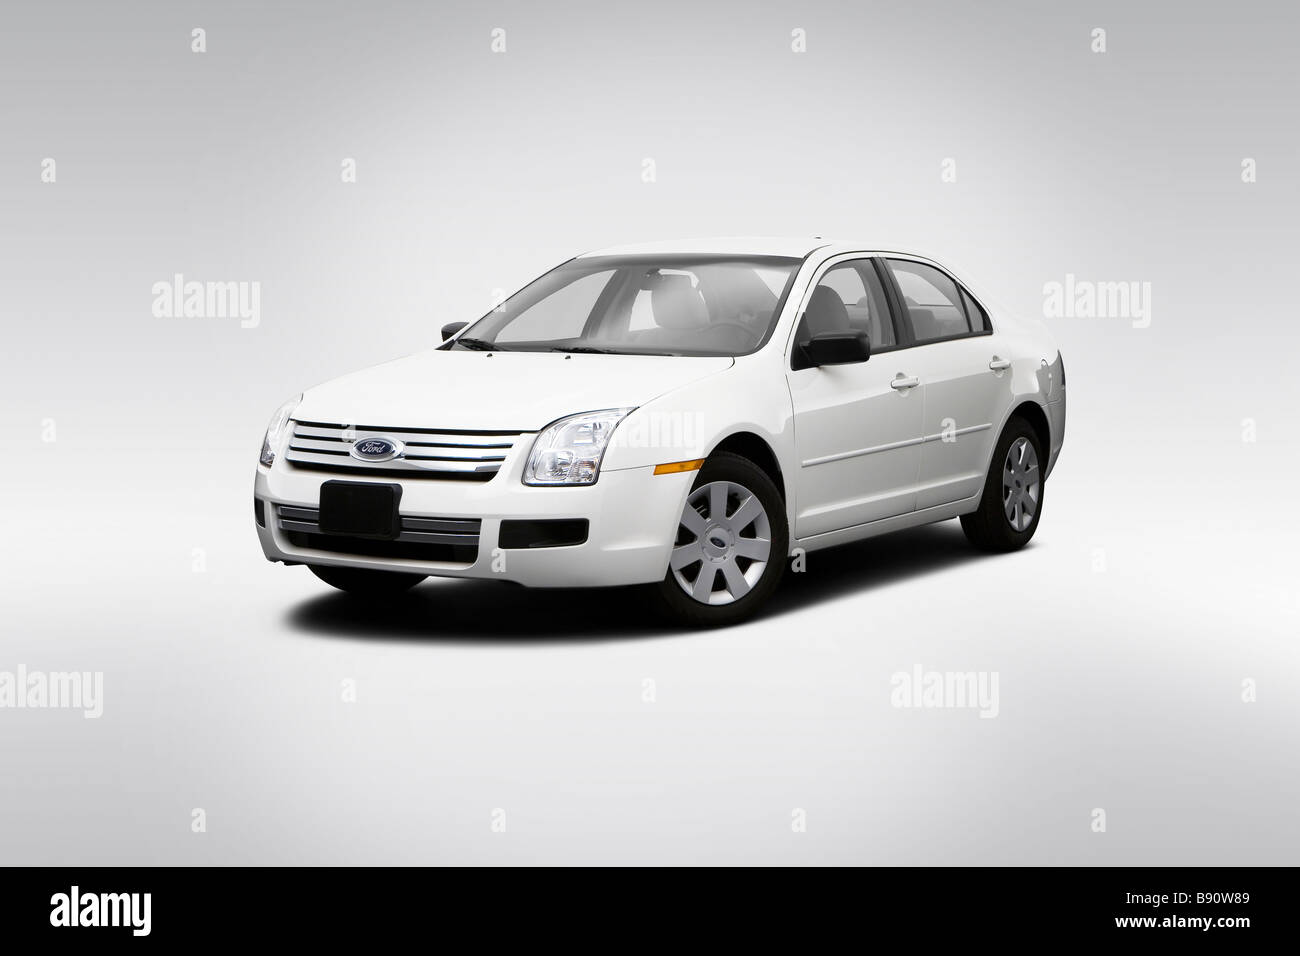 2009 Ford Fusion S in White - Front angle view - Stock Image